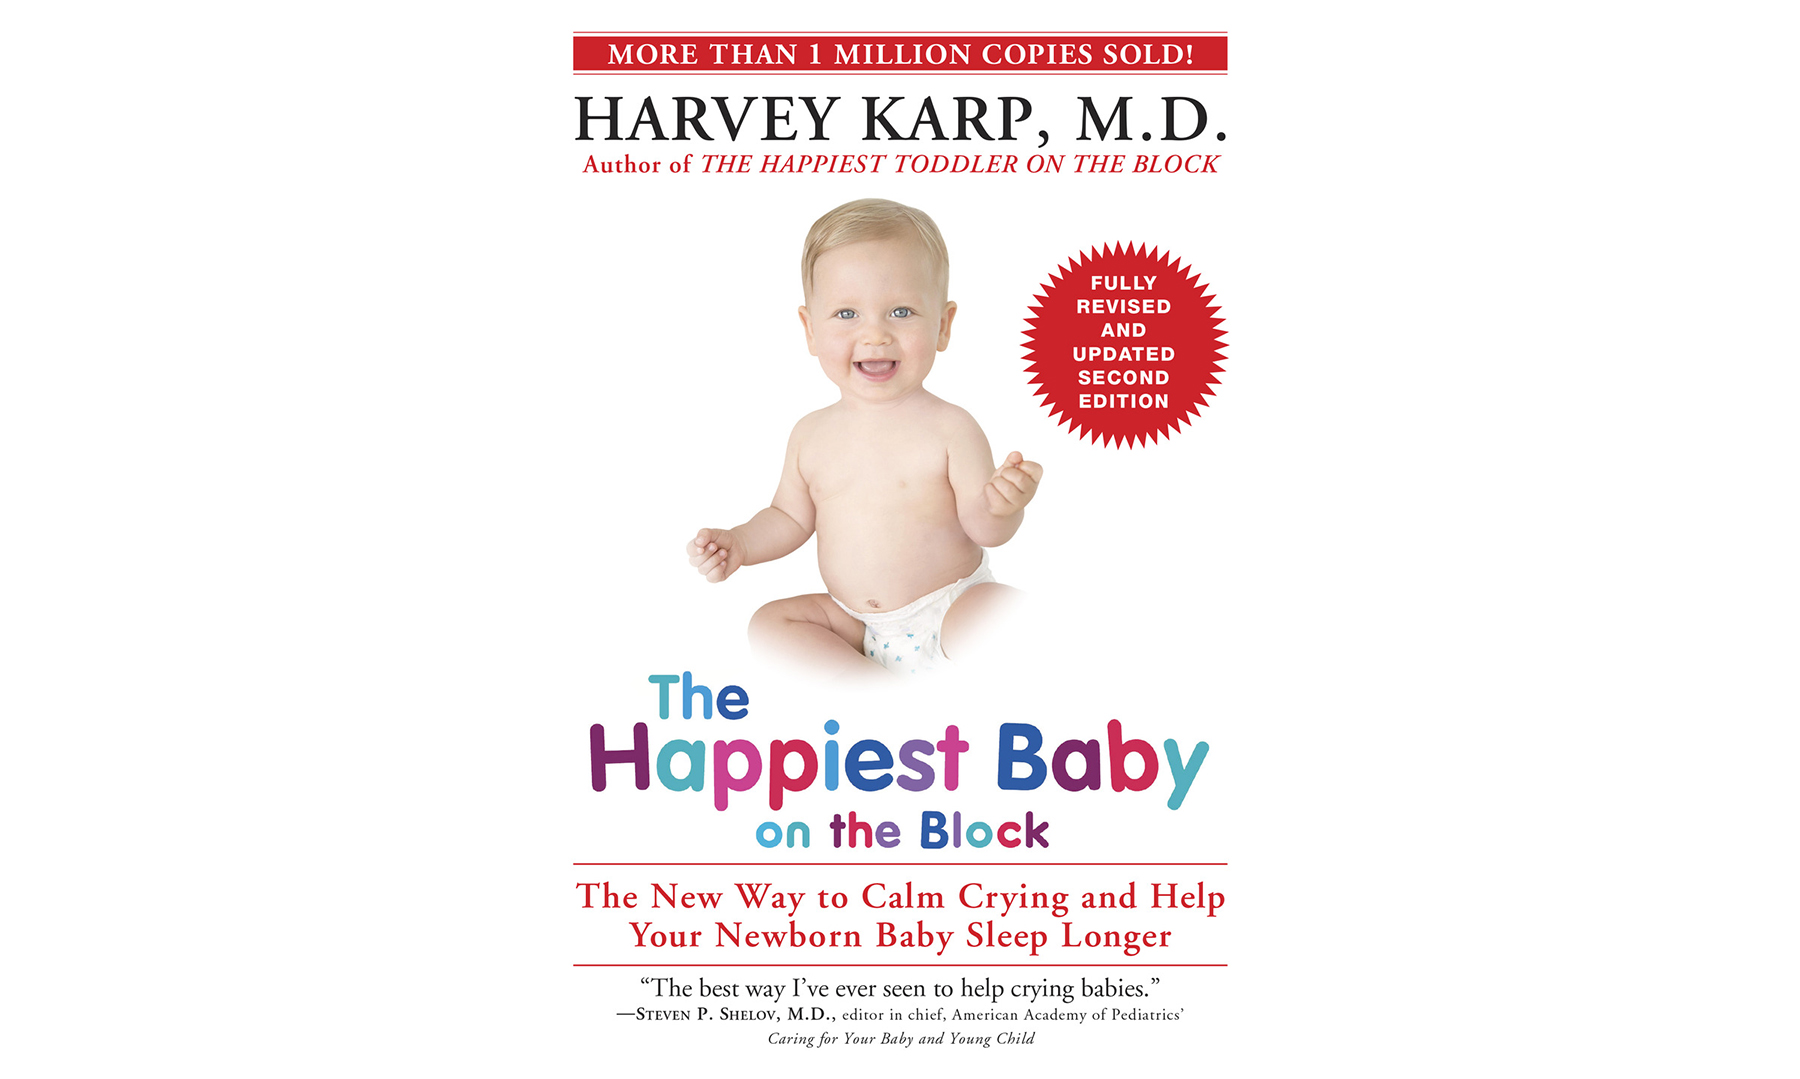 ‪The Happiest Baby on the Block, by Harvey Karp